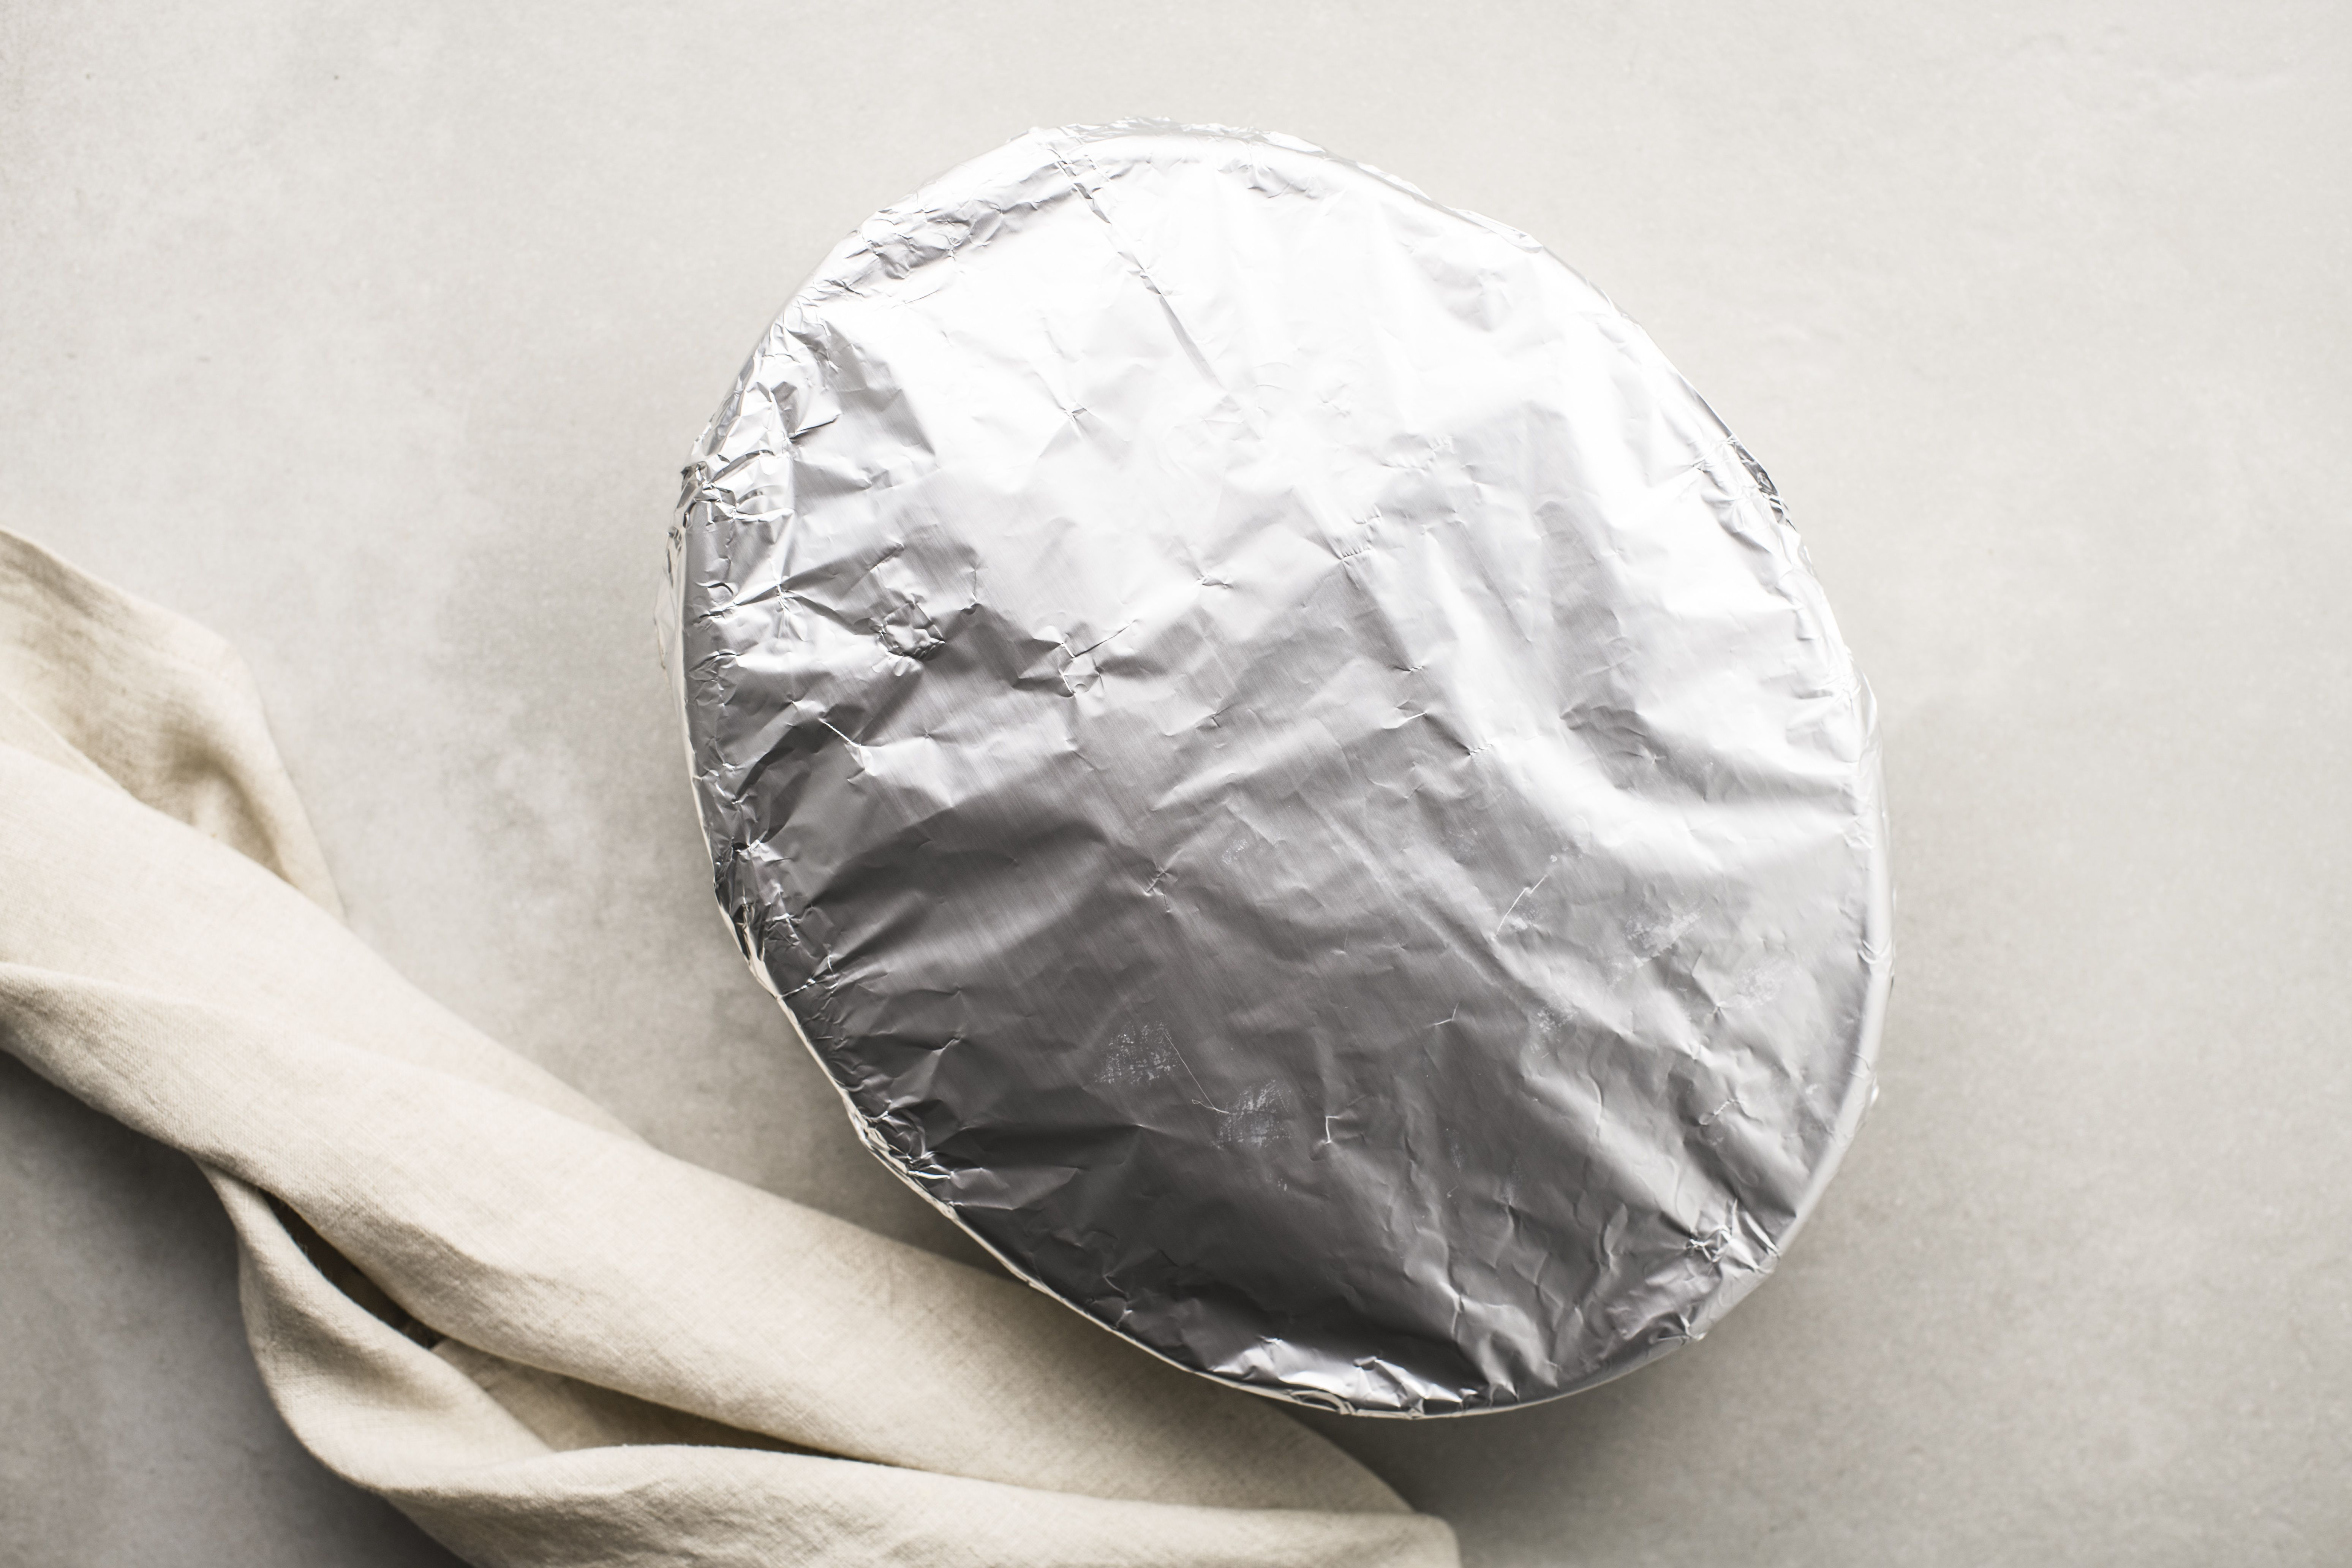 Cover casserole dish with foil